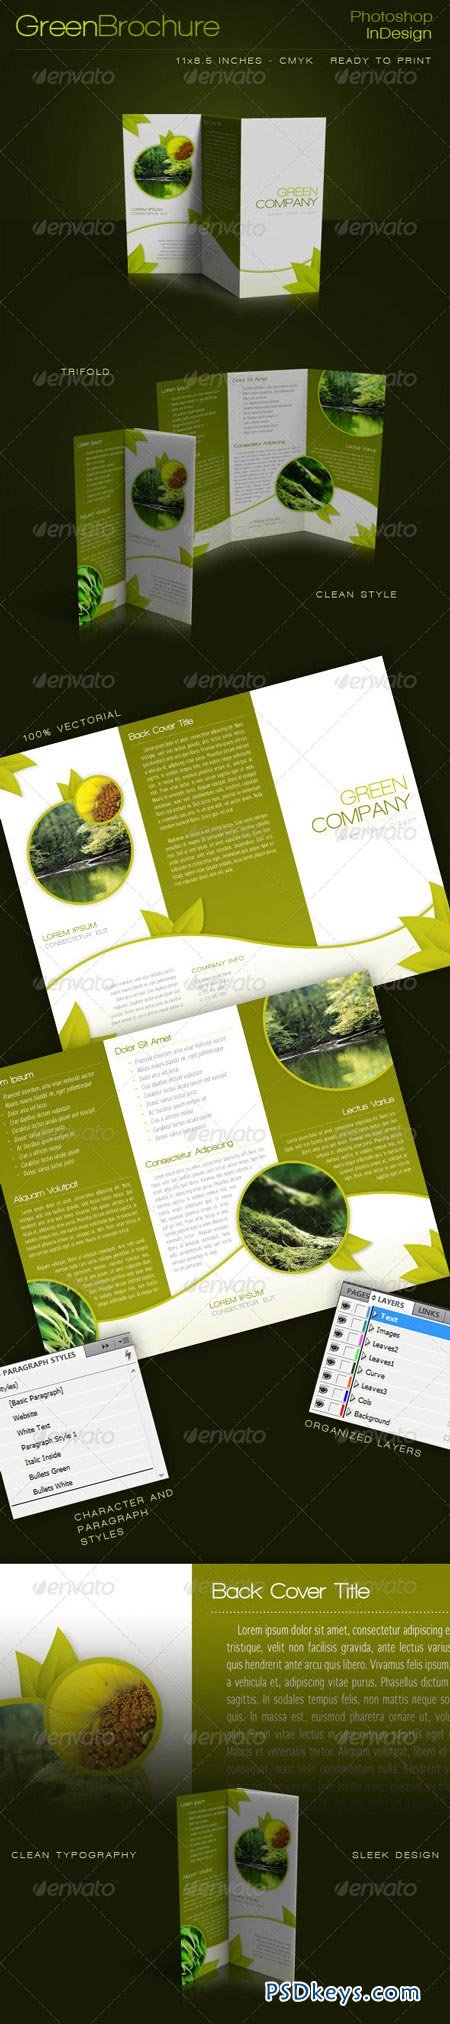 Green Trifold Brochure InDesign Template Free Download - Tri fold brochure indesign template